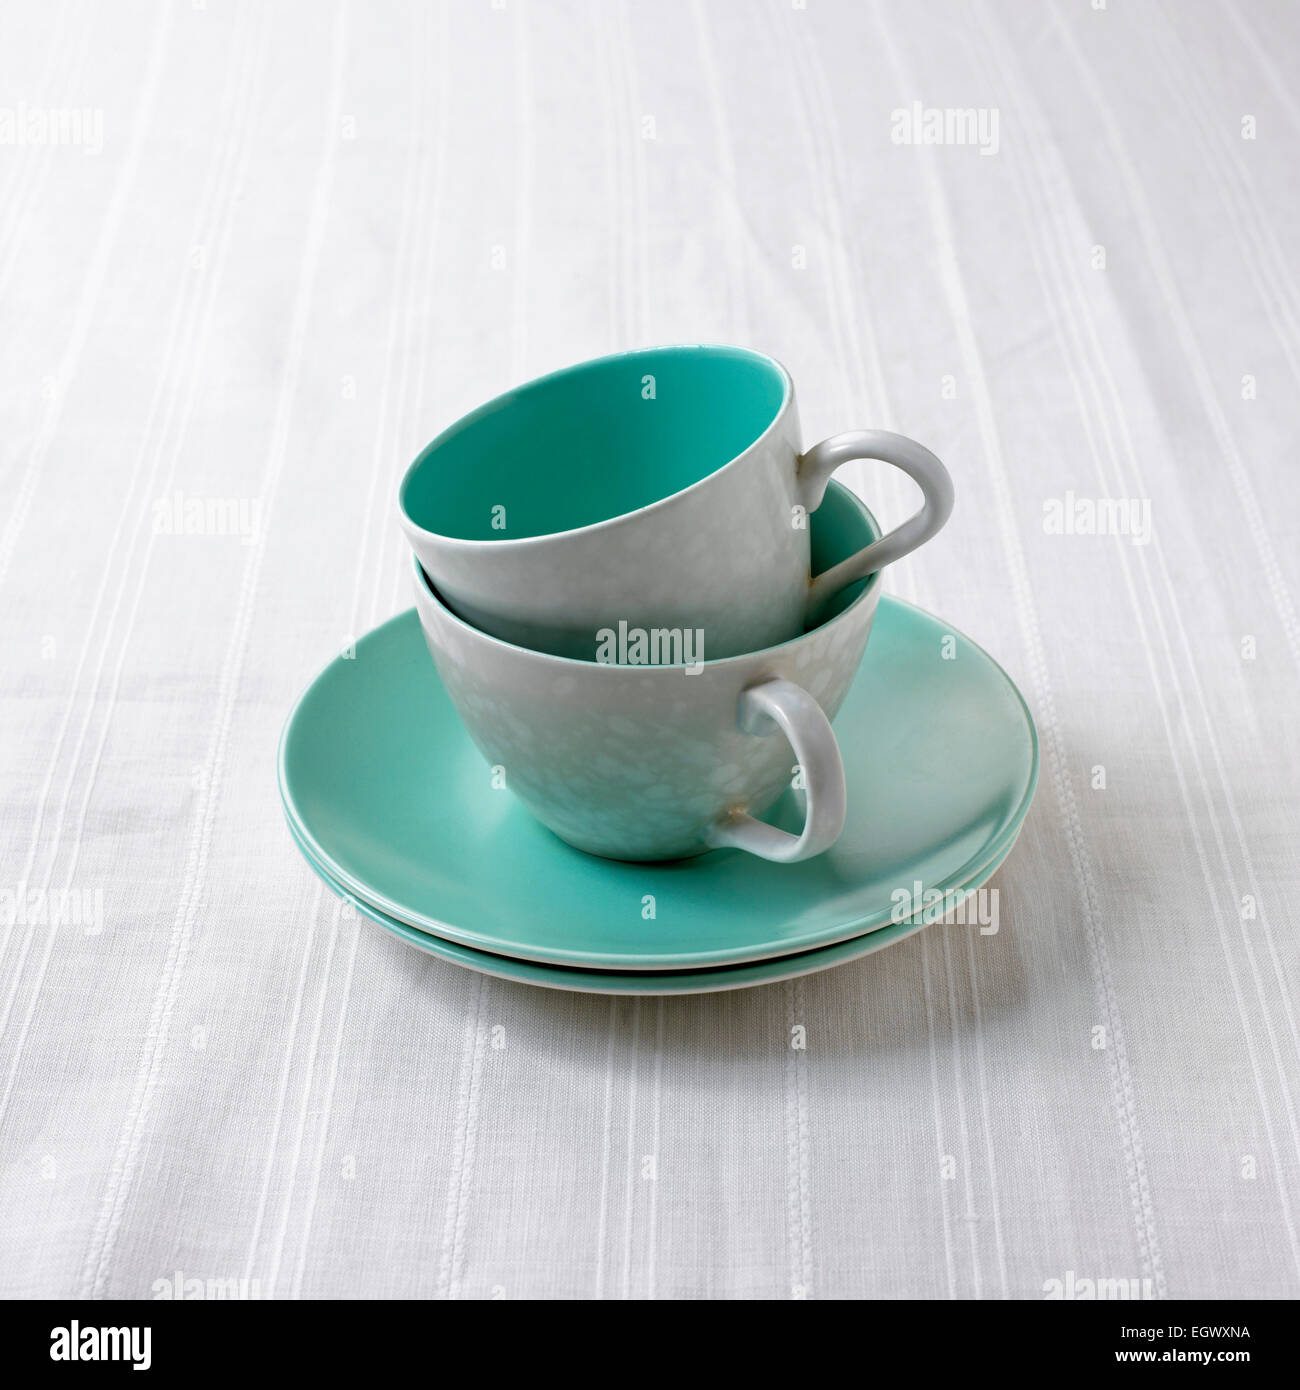 Tea cups and saucers - Stock Image